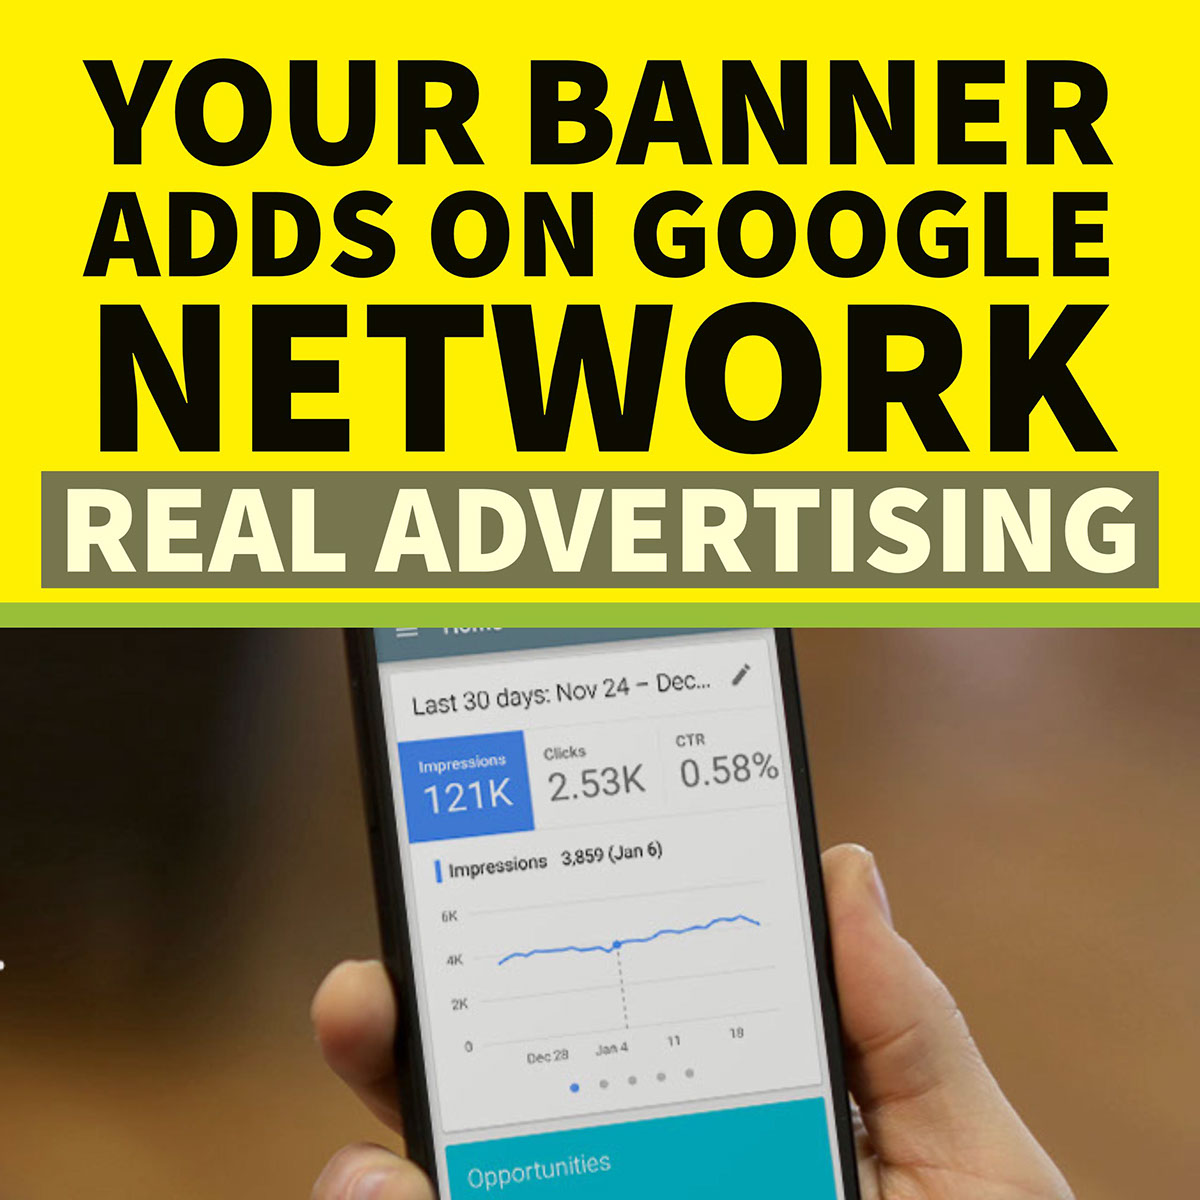 REAL TIME GOOGLE ADVERTISING OFFER,  PLACE YOUR BANNER ADDS ON GOOGLE OR YOUTUBE